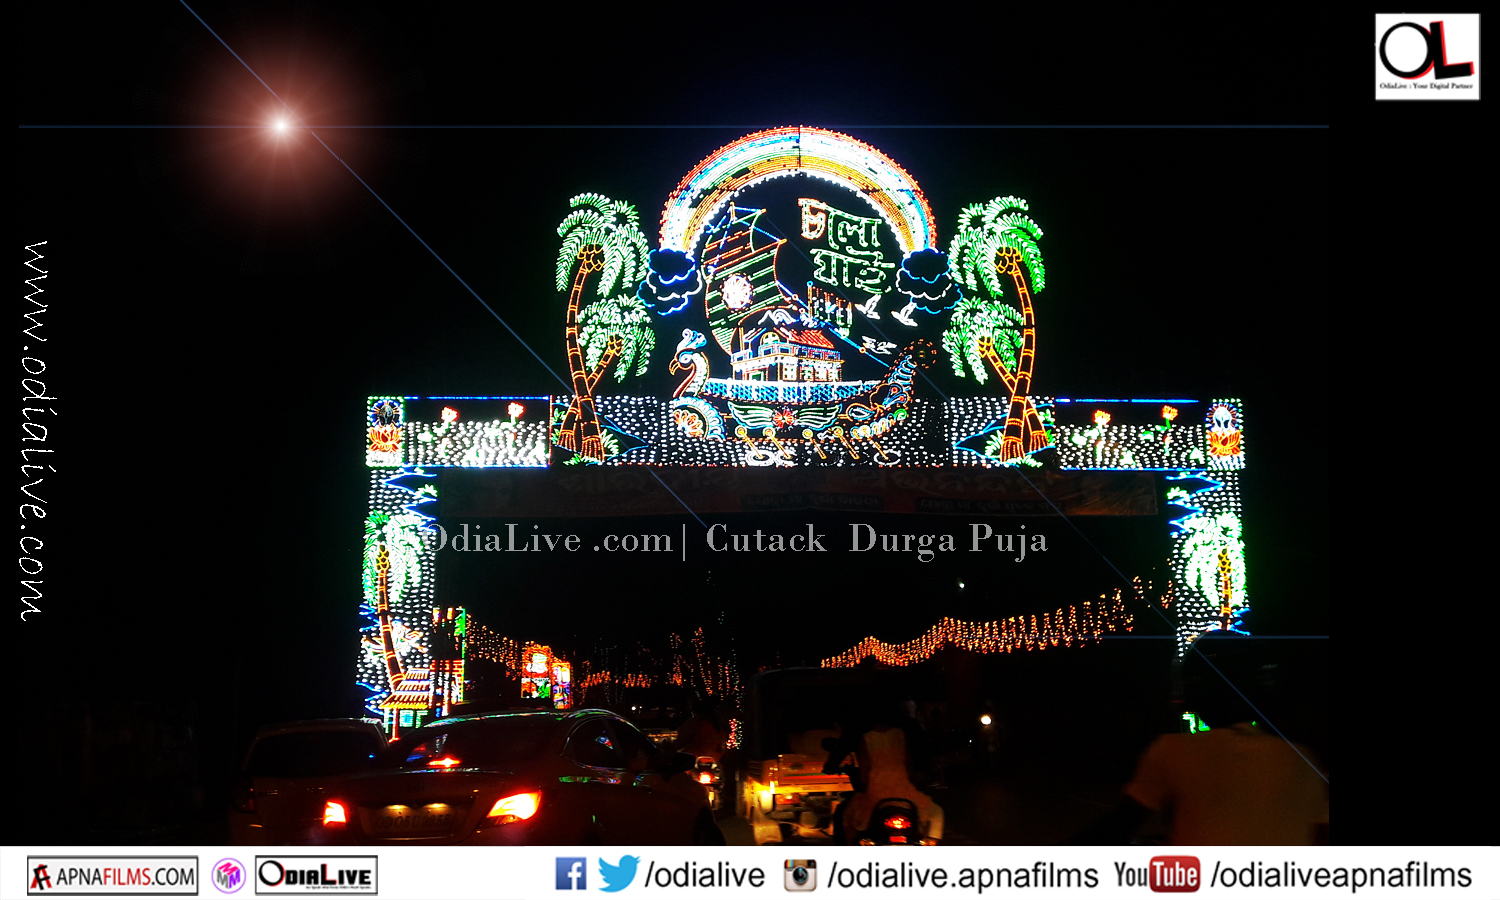 durga-puja-photos-cuttack